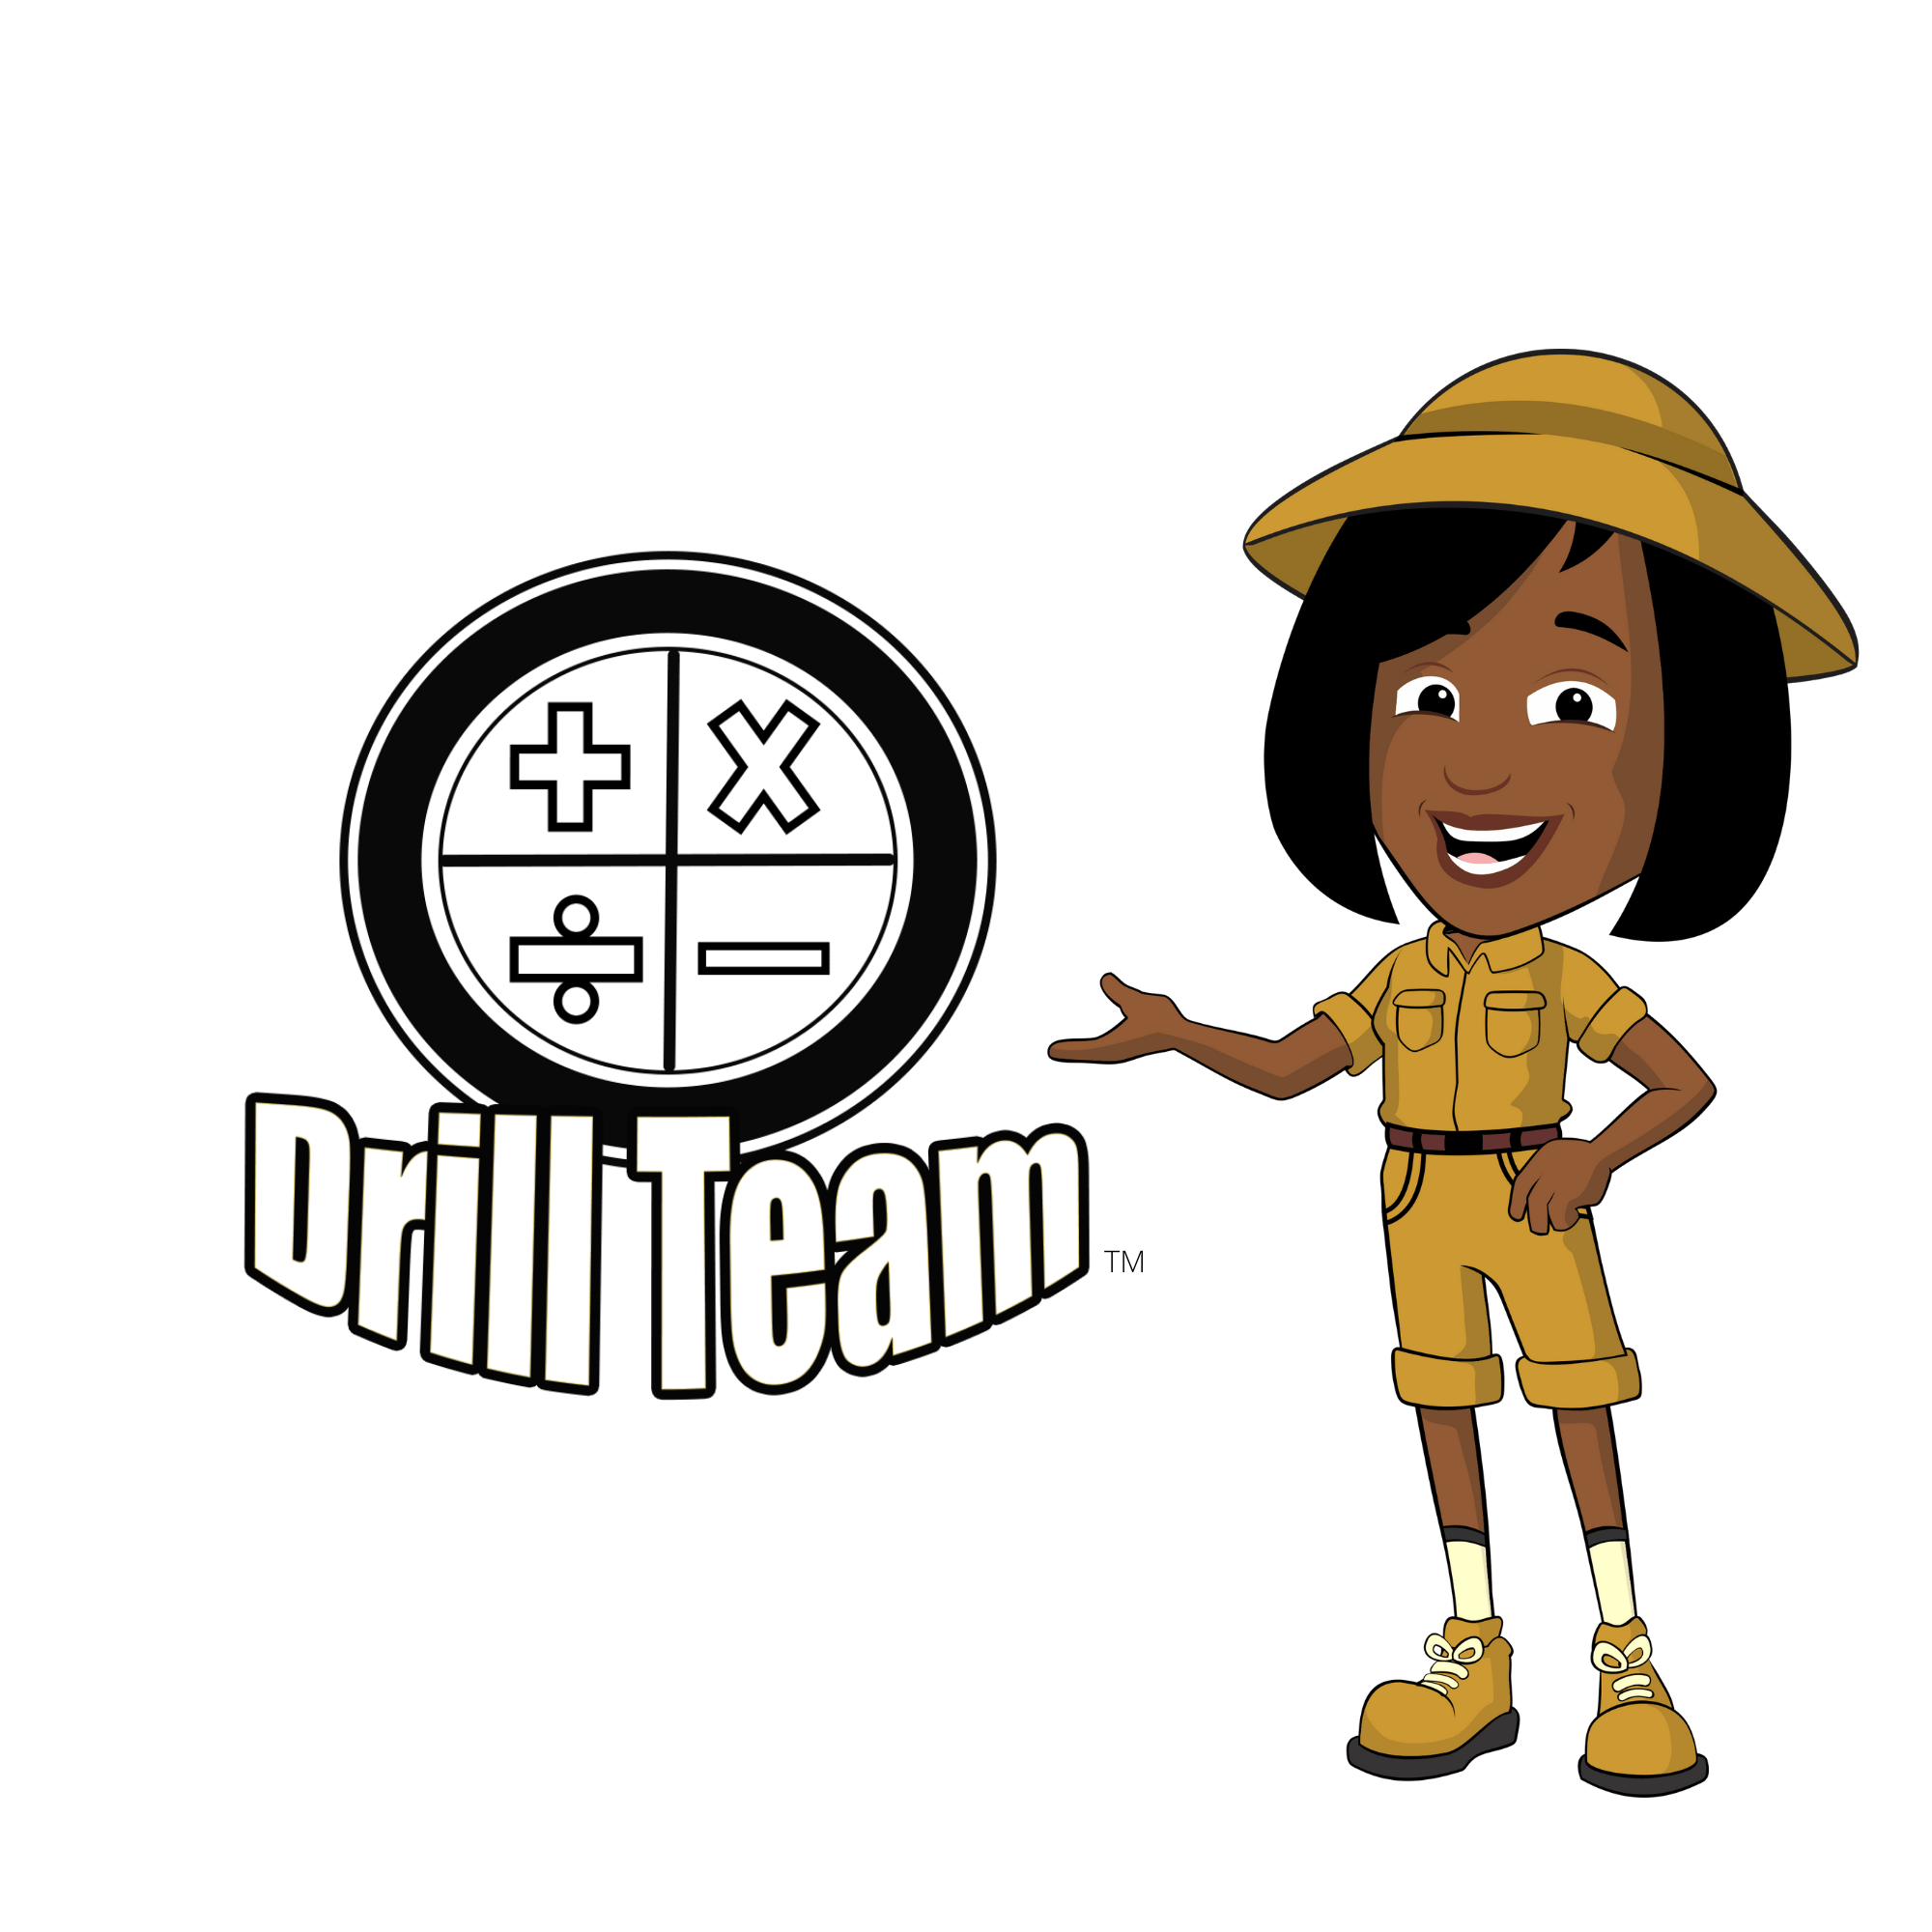 Animated Nicole the Math Lady character dressed in her Safari outfit for Drill Team Online Math Facts Program